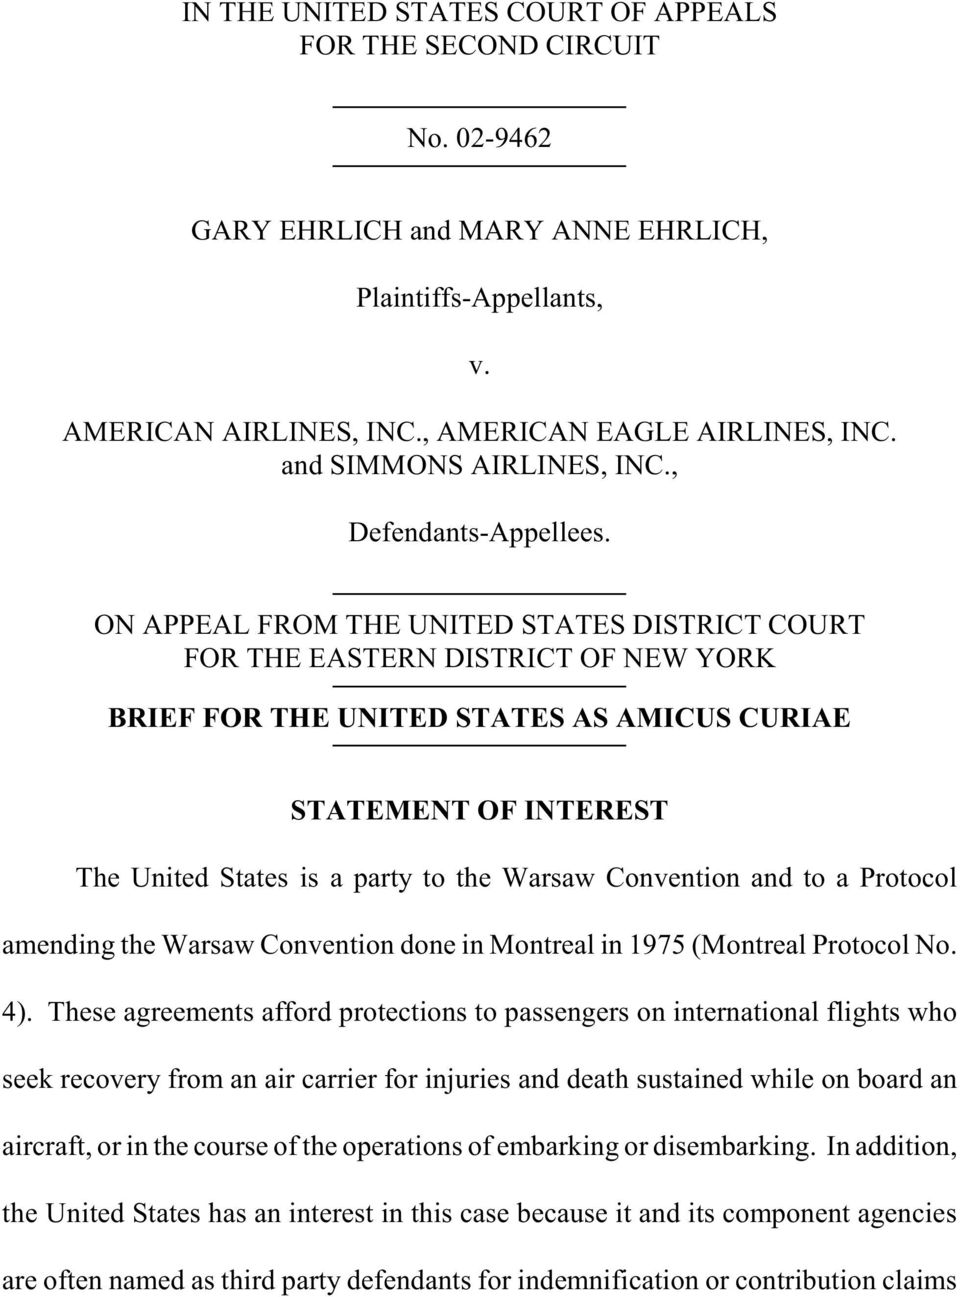 ON APPEAL FROM THE UNITED STATES DISTRICT COURT FOR THE EASTERN DISTRICT OF NEW YORK BRIEF FOR THE UNITED STATES AS AMICUS CURIAE STATEMENT OF INTEREST The United States is a party to the Warsaw